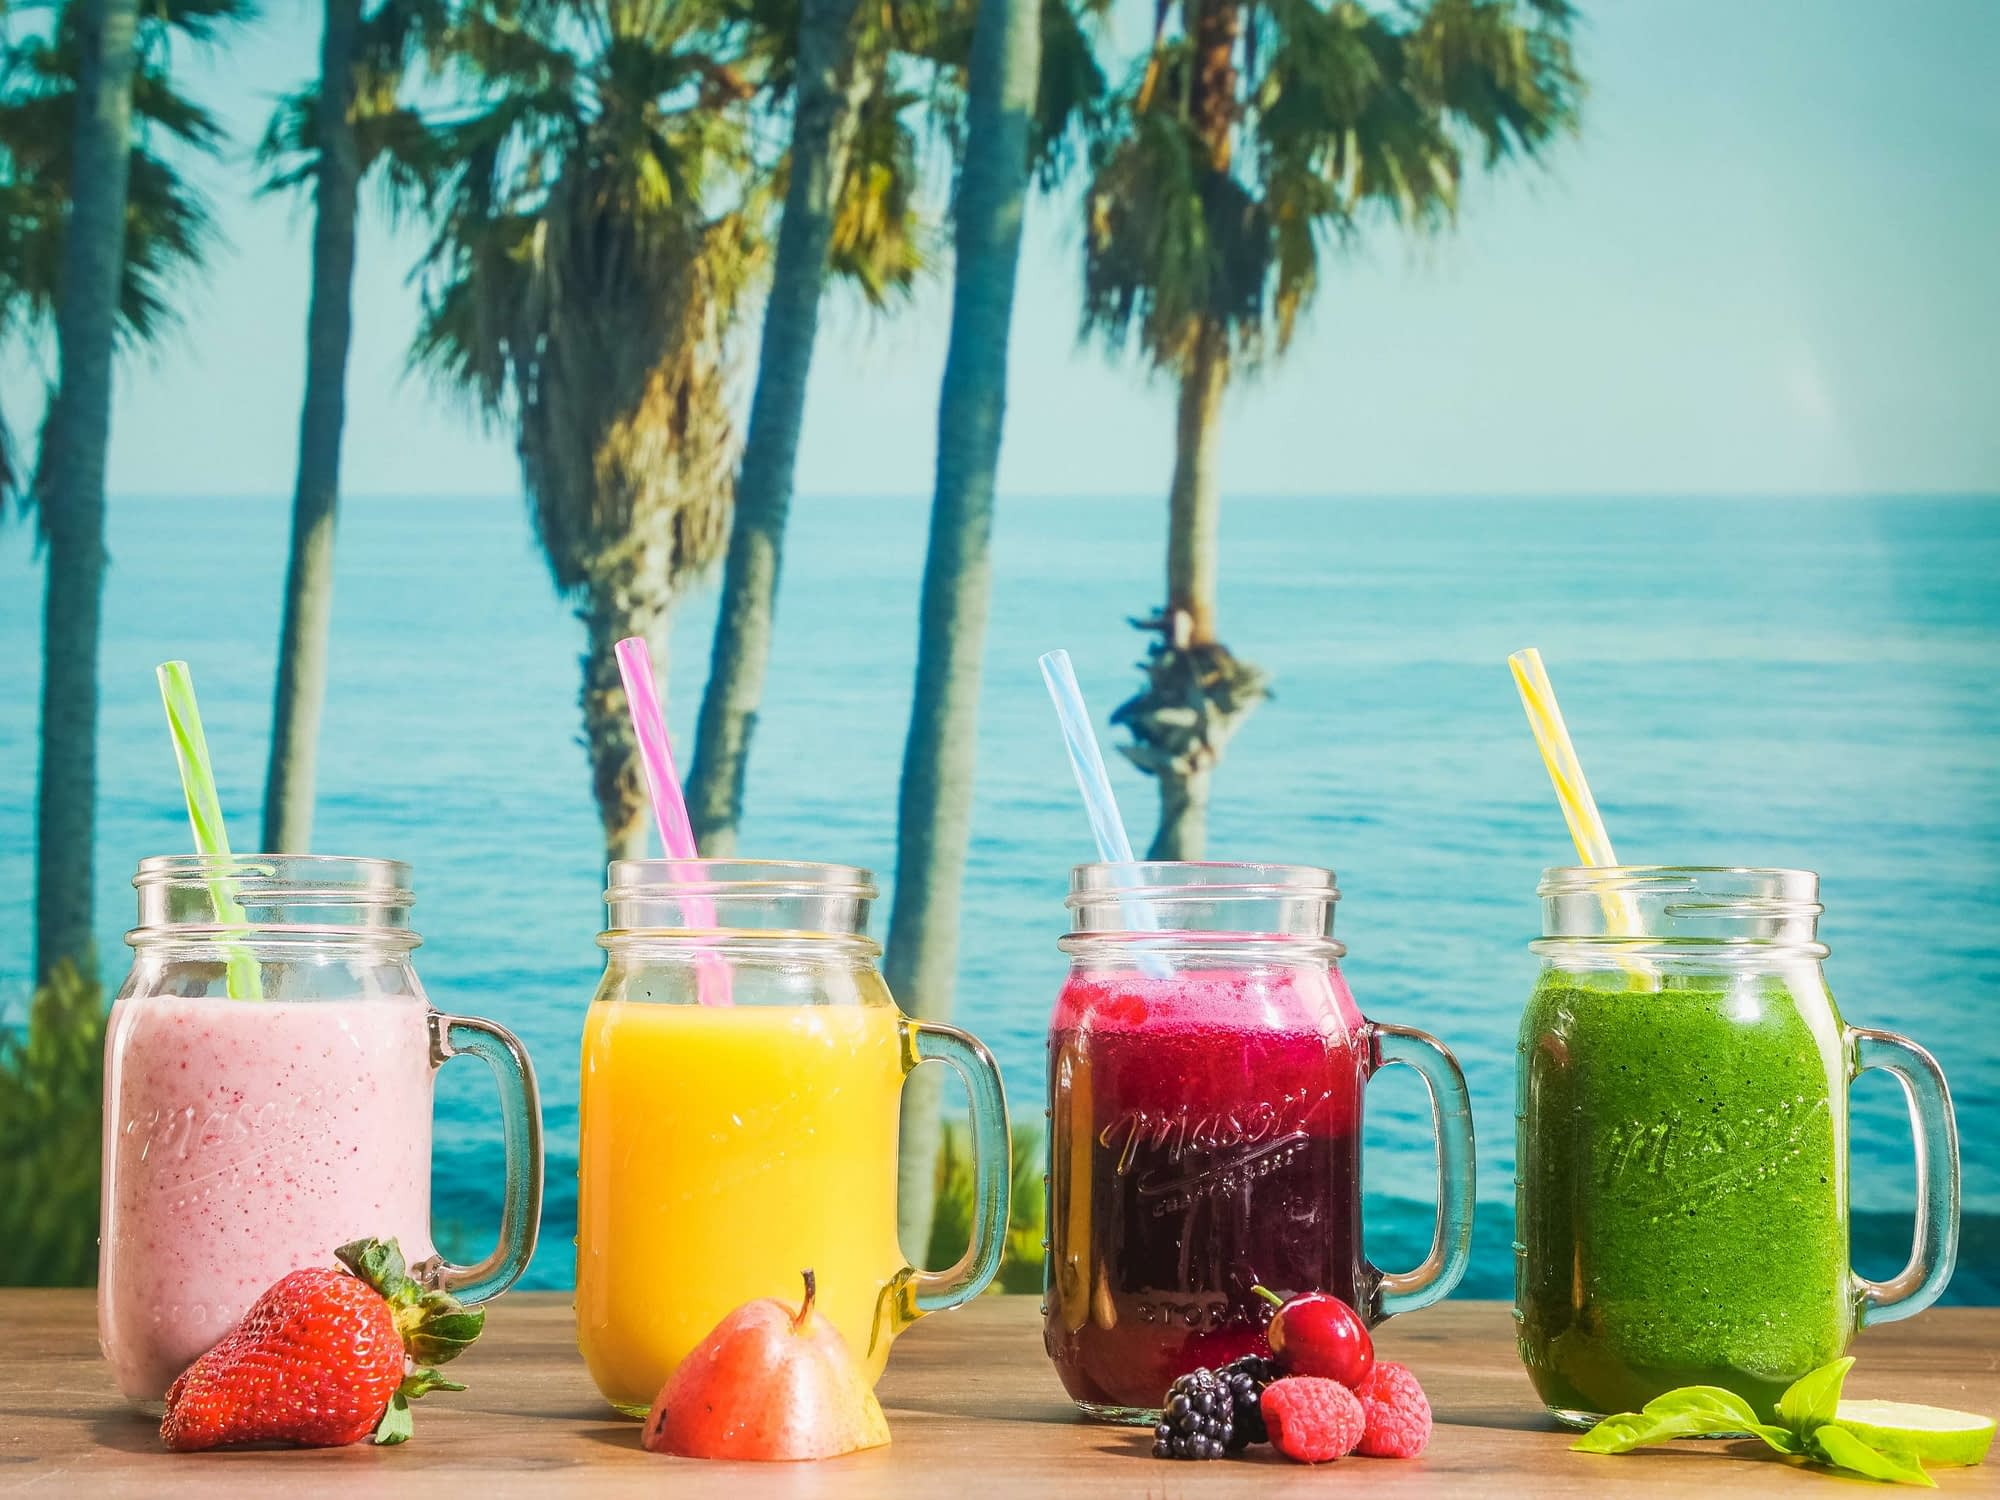 Juicing organic products, specifically fruits and vegetables into 3-day juice cleanse recipes, is perhaps the simplest way to consume micronutrients.